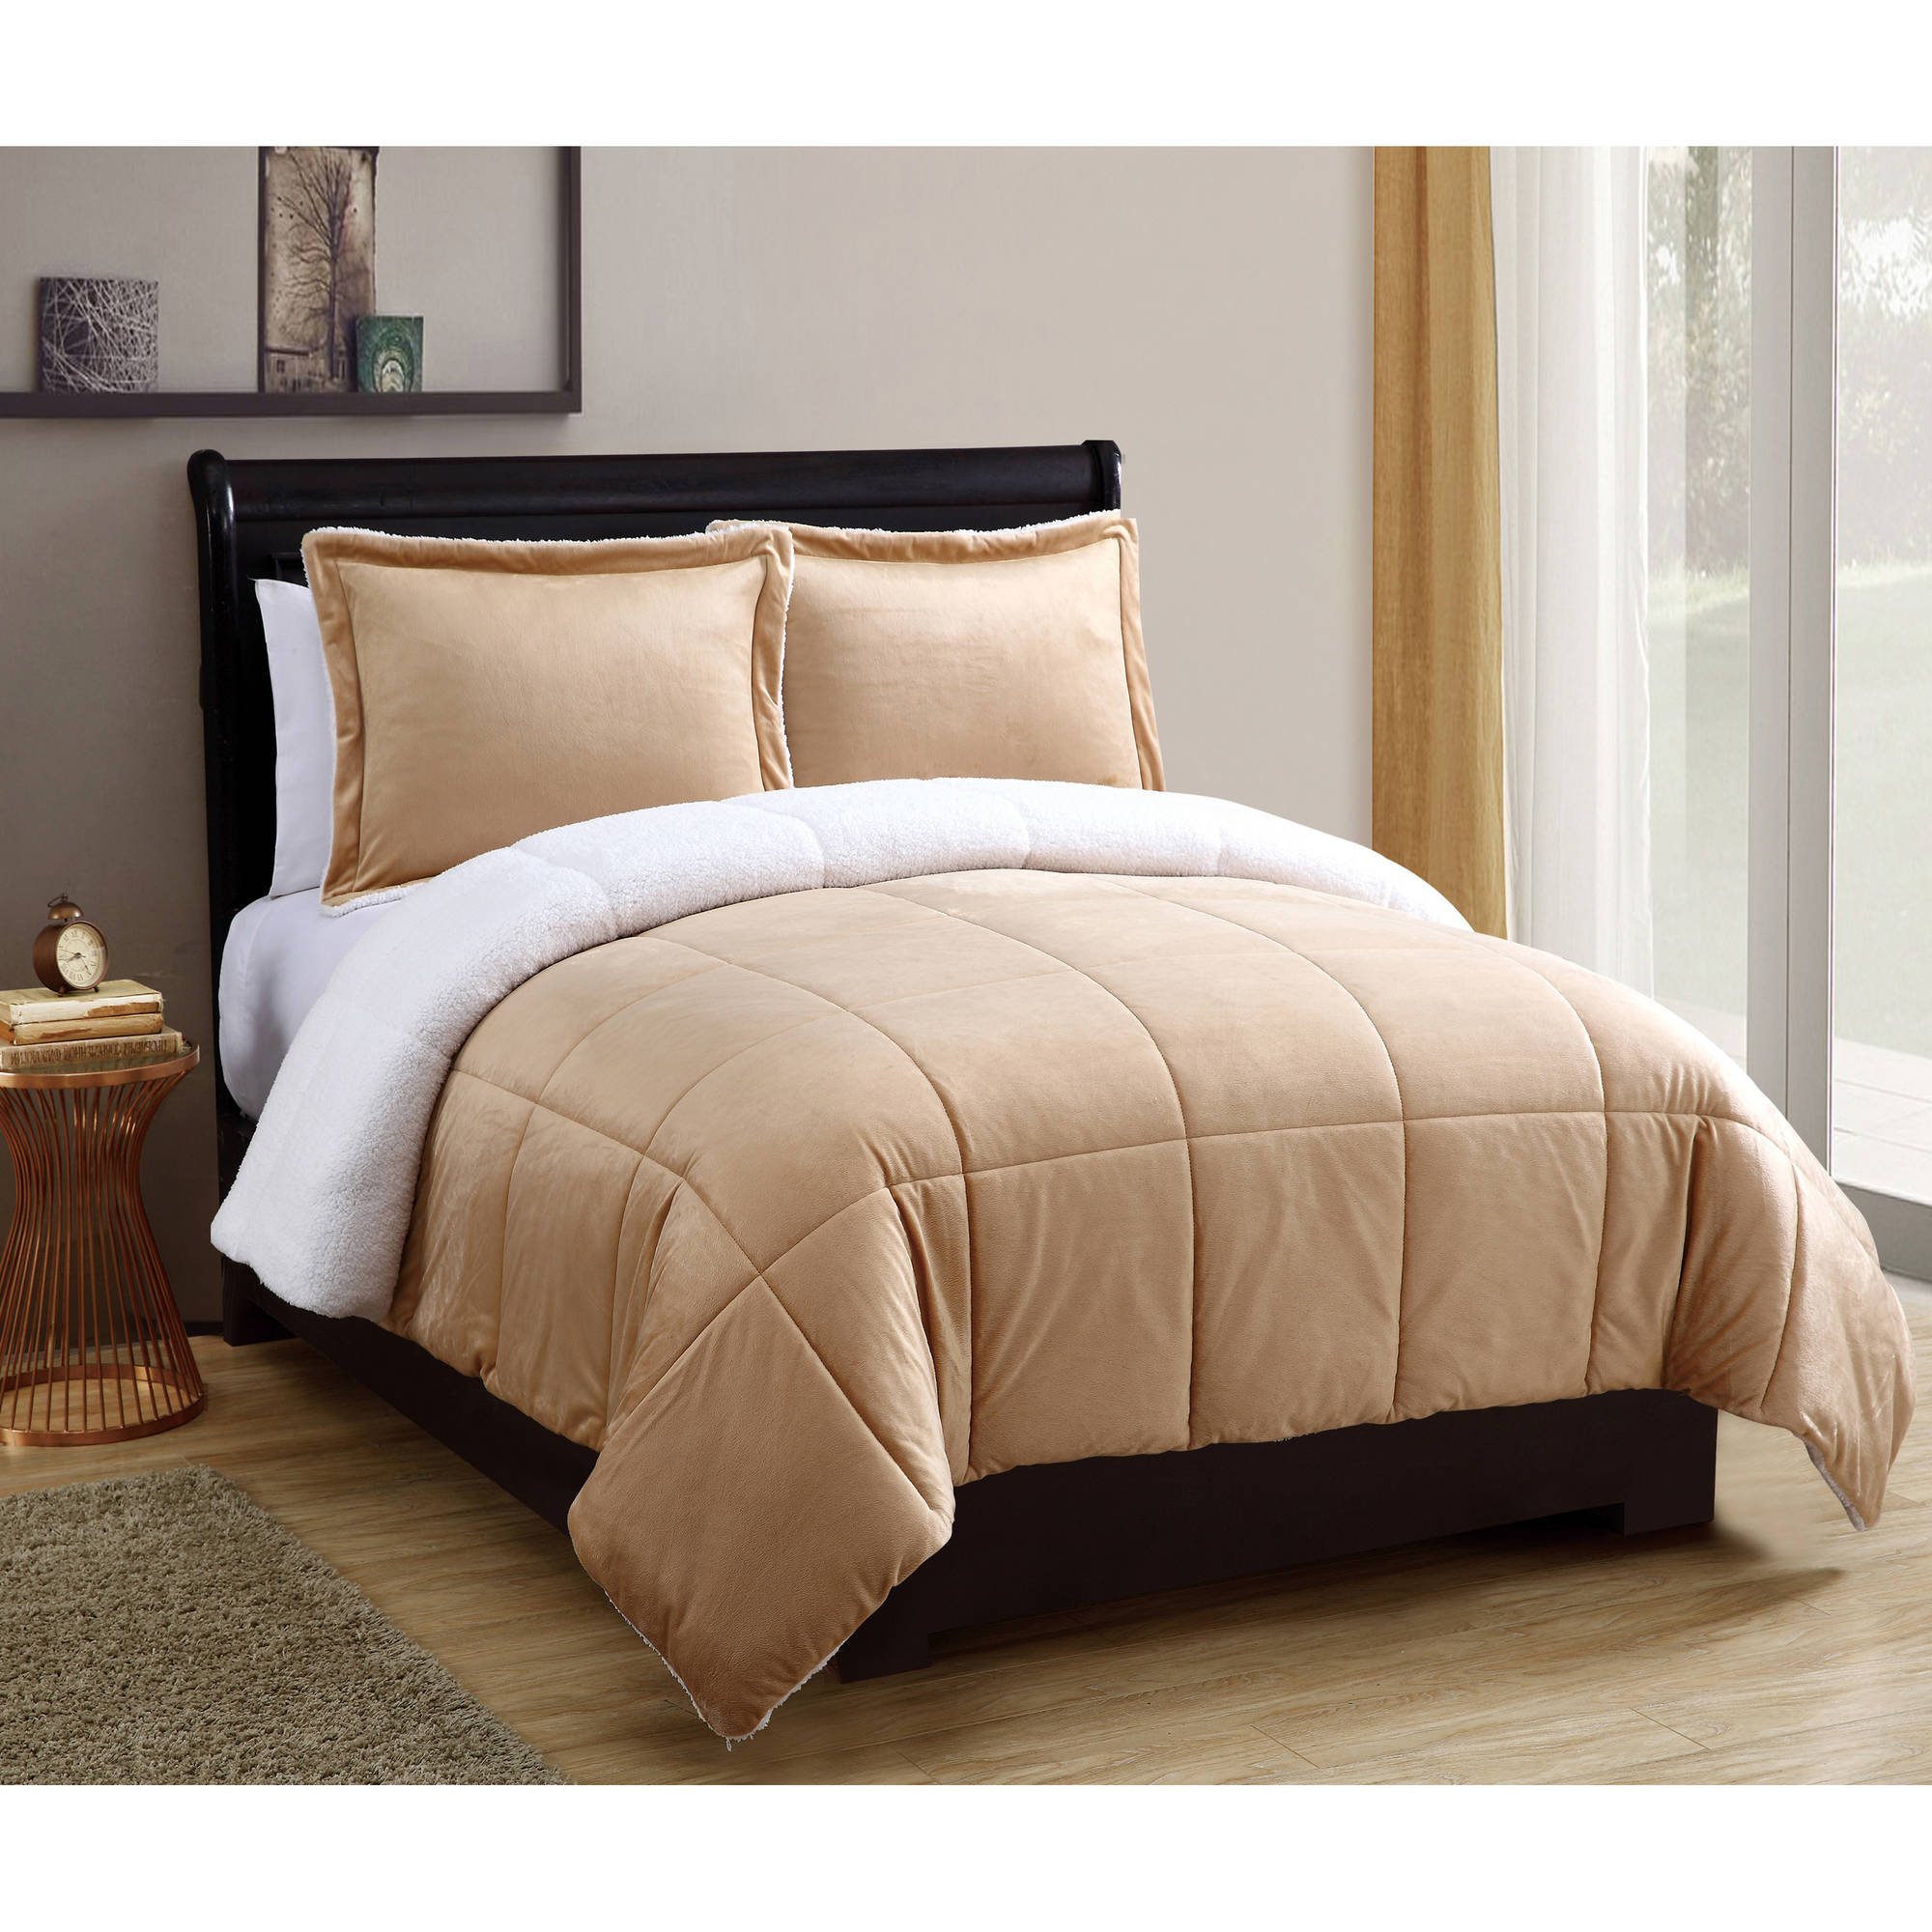 Better homes and gardens pintuck bedding comforter mini - Better homes and gardens customer service ...